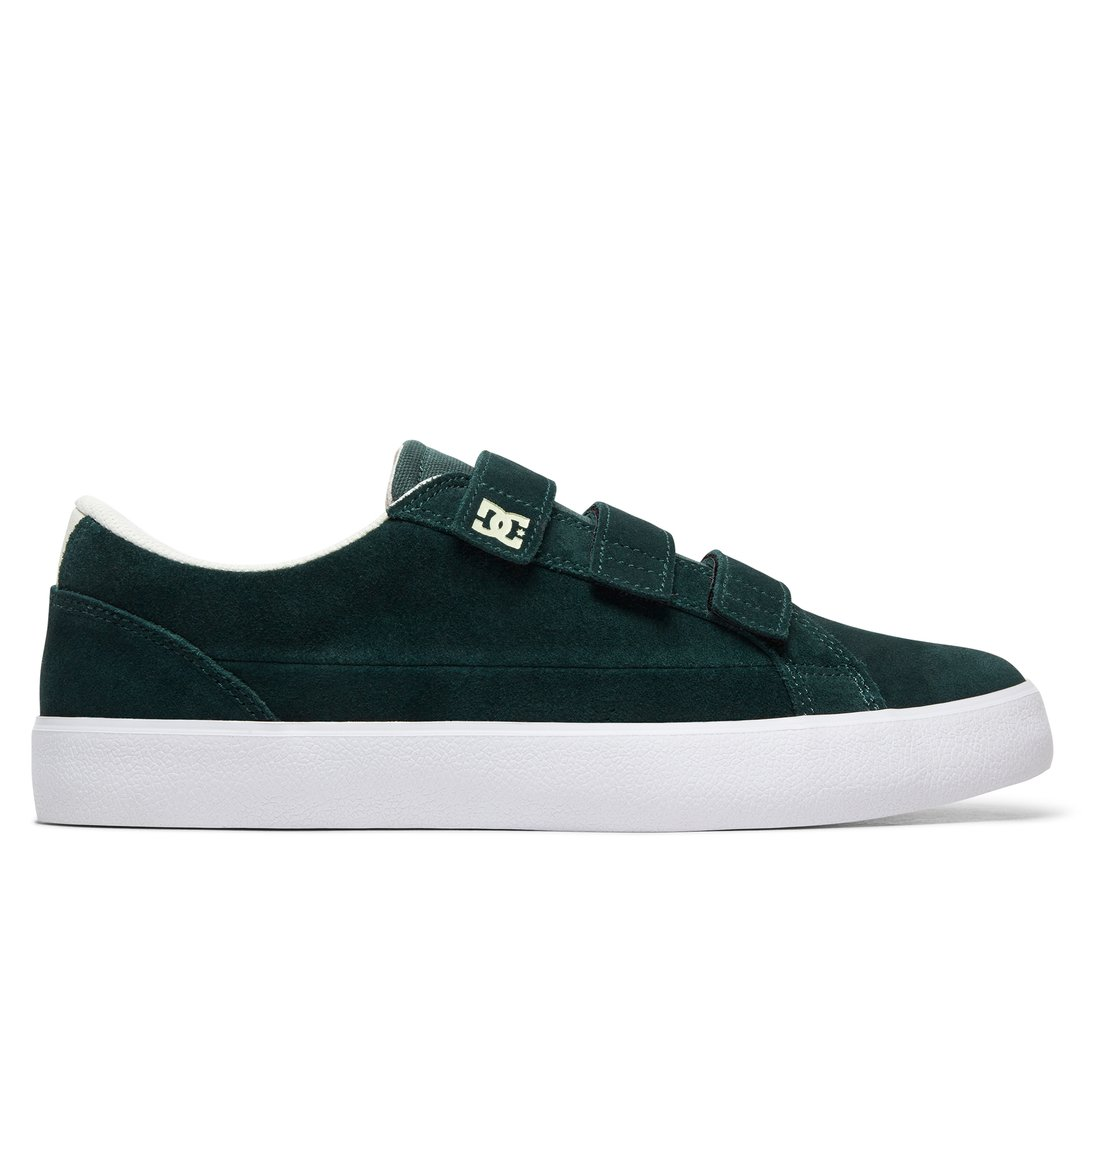 0 Lynnfield V S Skate Shoes Green ADYS300539 DC Shoes 94357bd90e7c